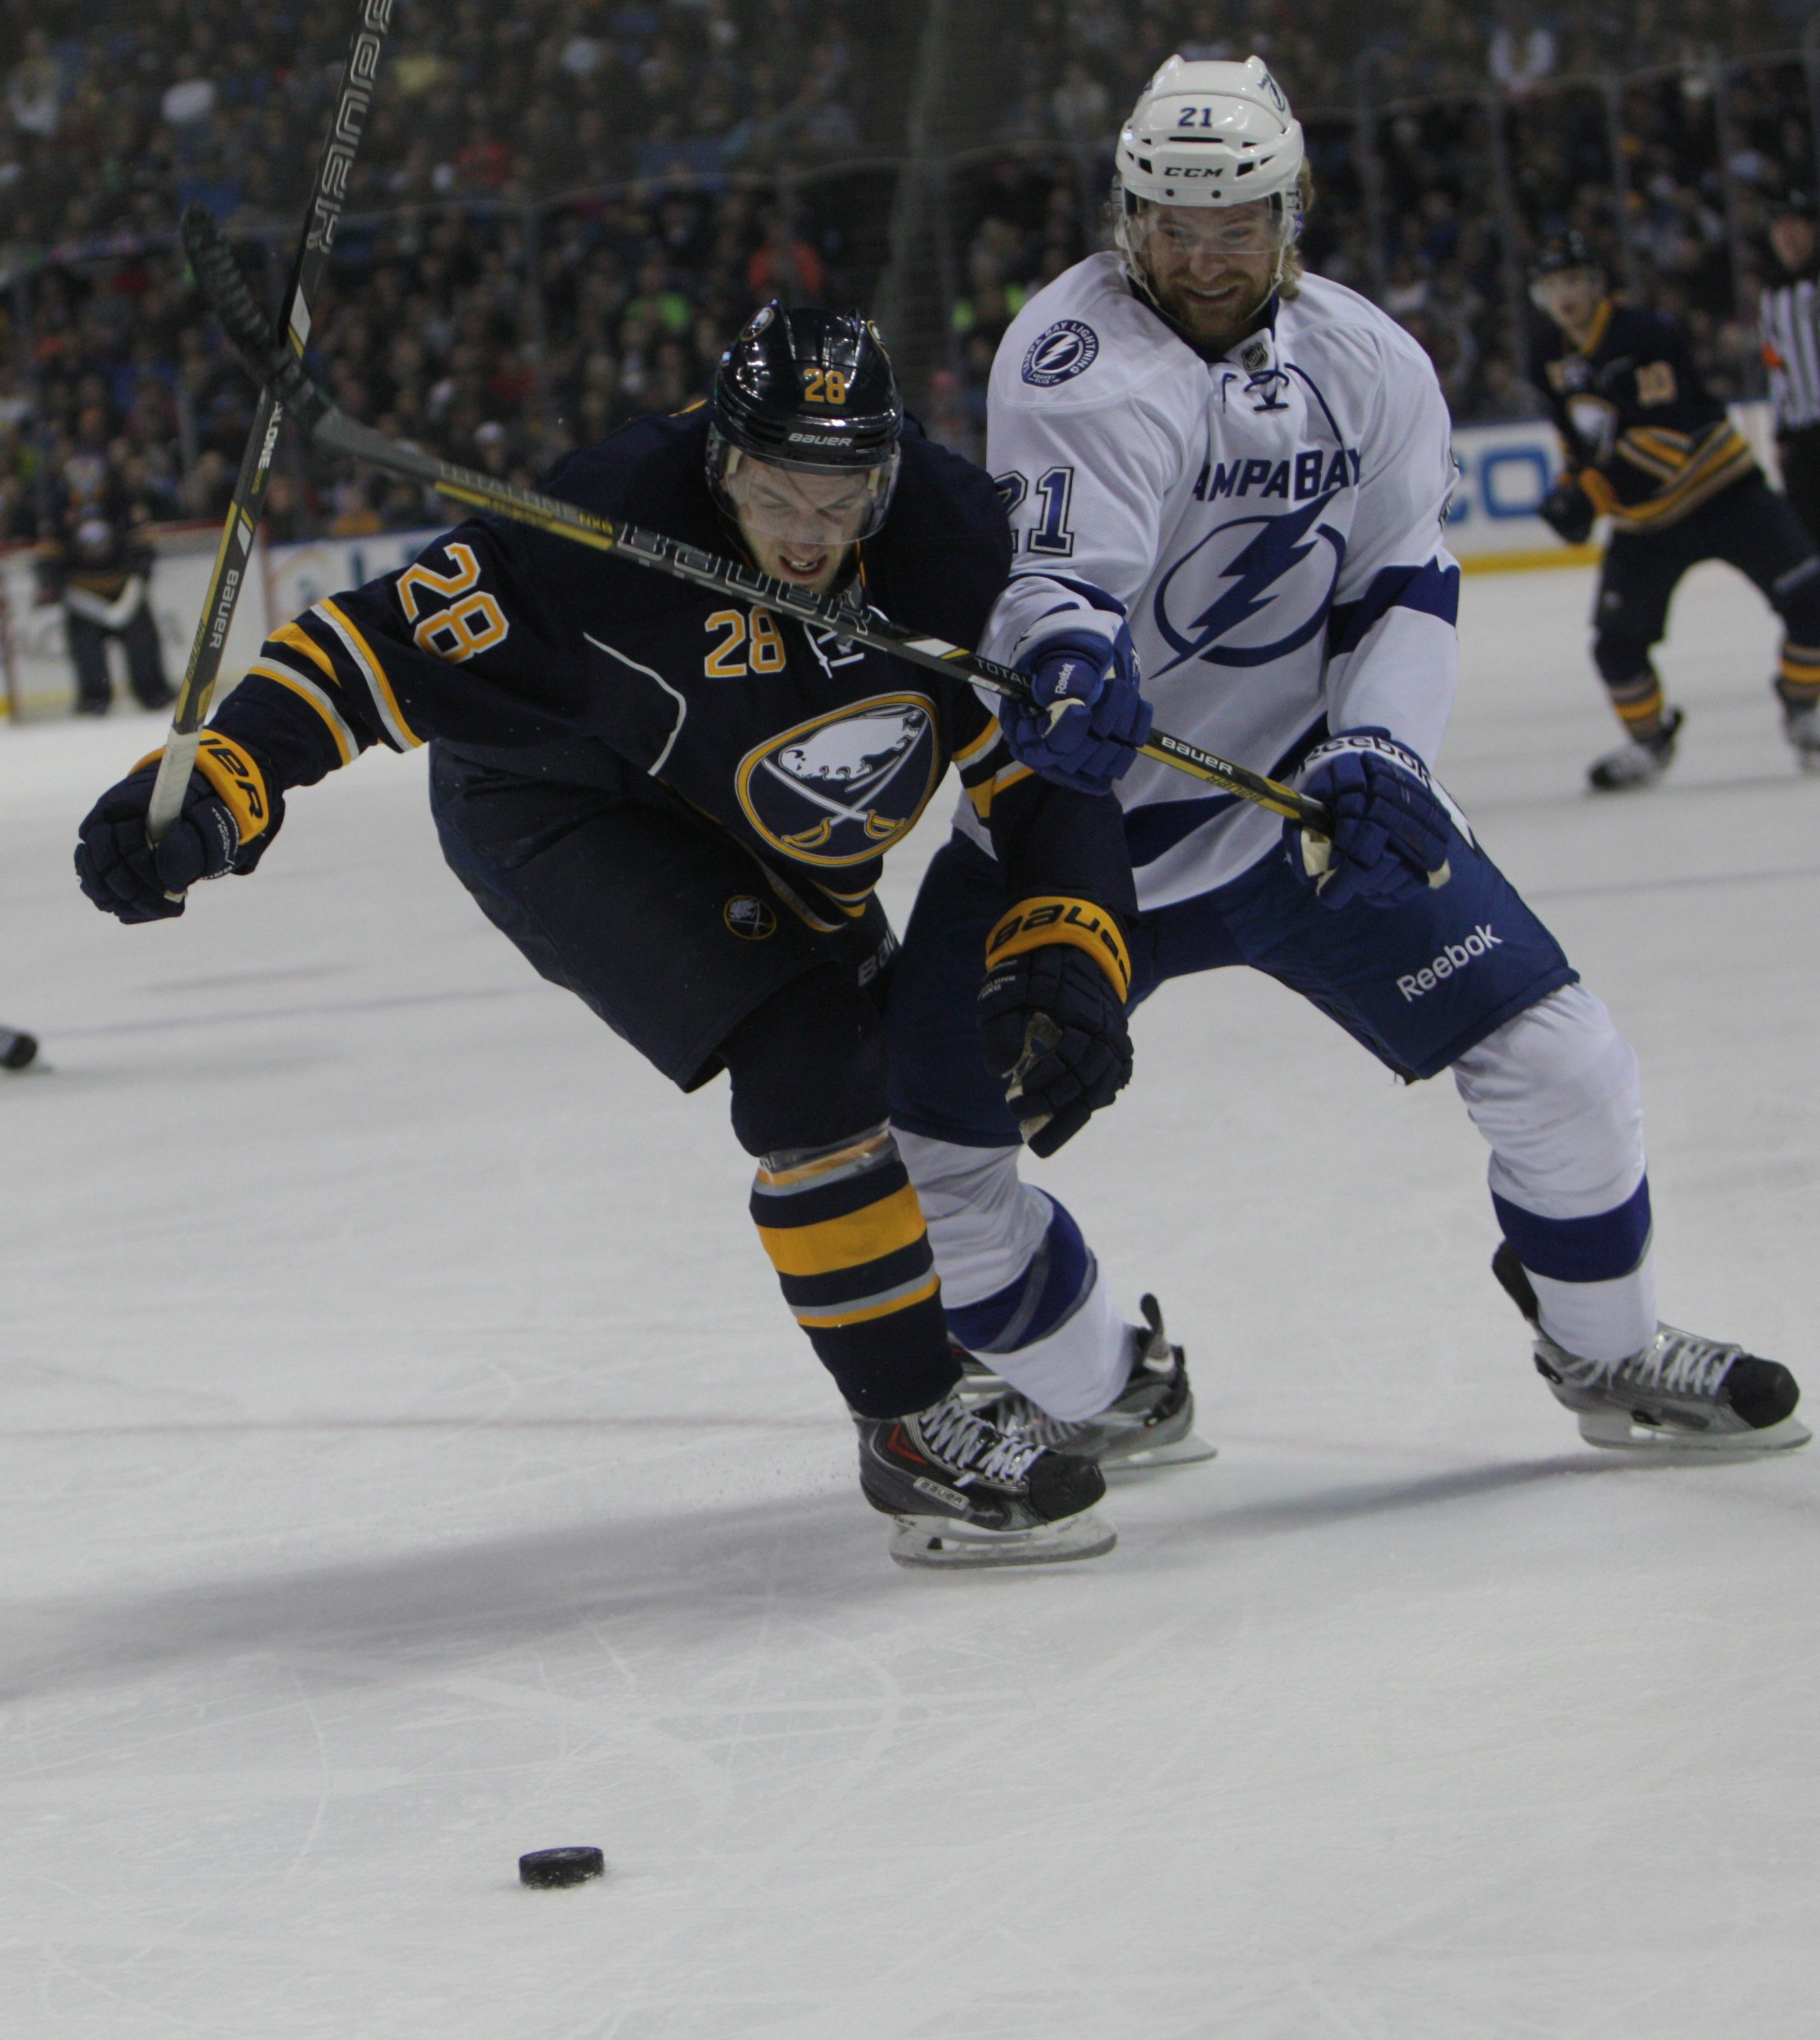 The Sabres' Zemgus Girgensons fights for the puck with Tampa Bay's Michael Kostka as Girgensons returned to the lineup after missing 11 games.